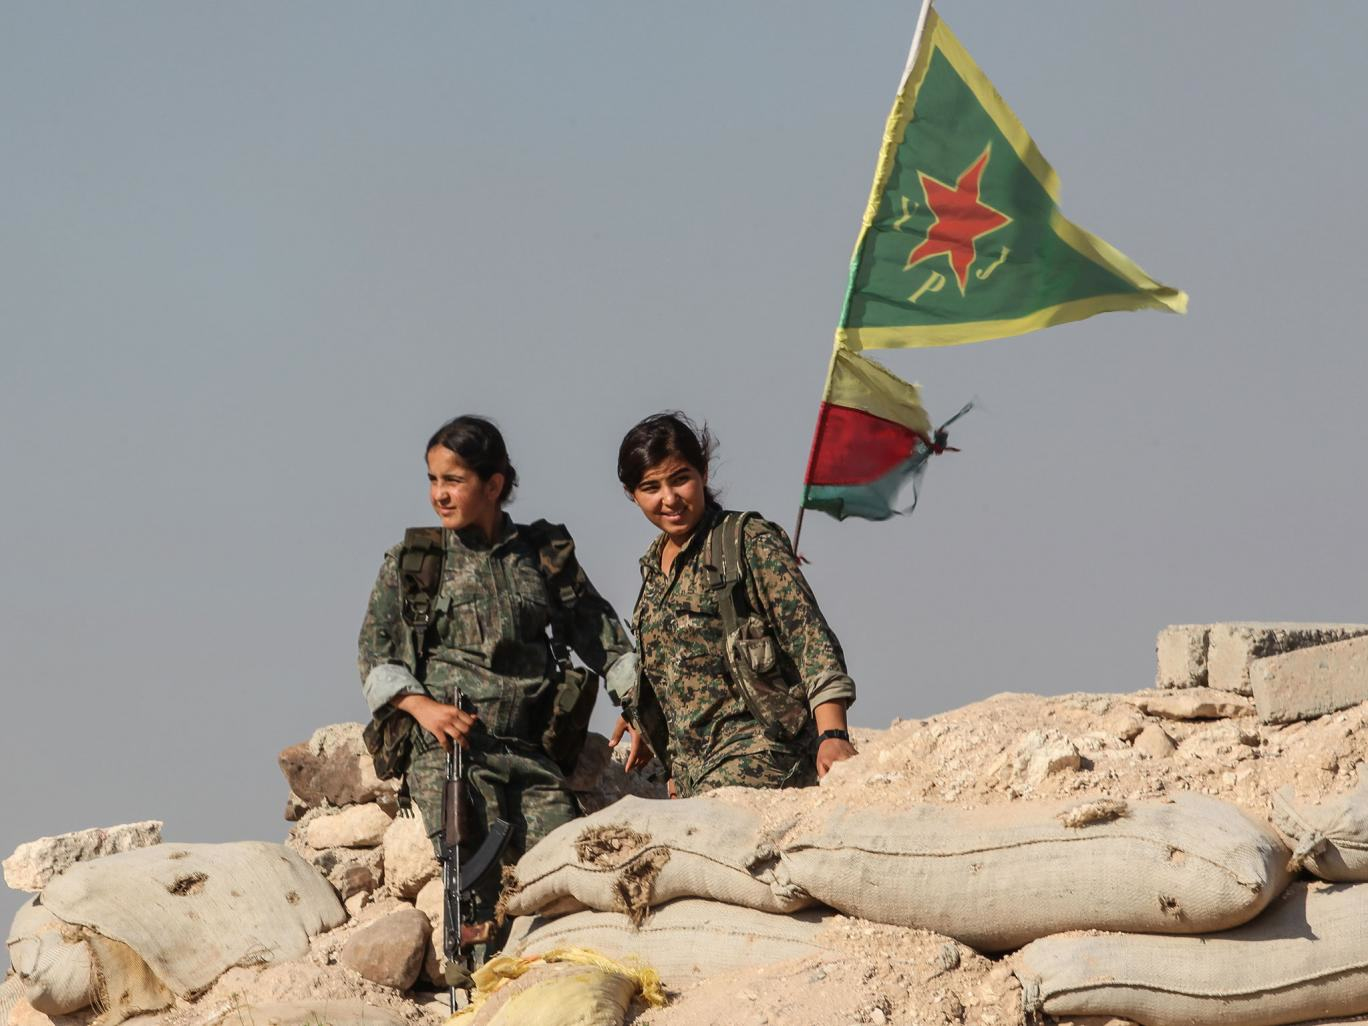 Female Fighters Tackling ISIS Says The Militants Are Afraid Of Girls ypg 1